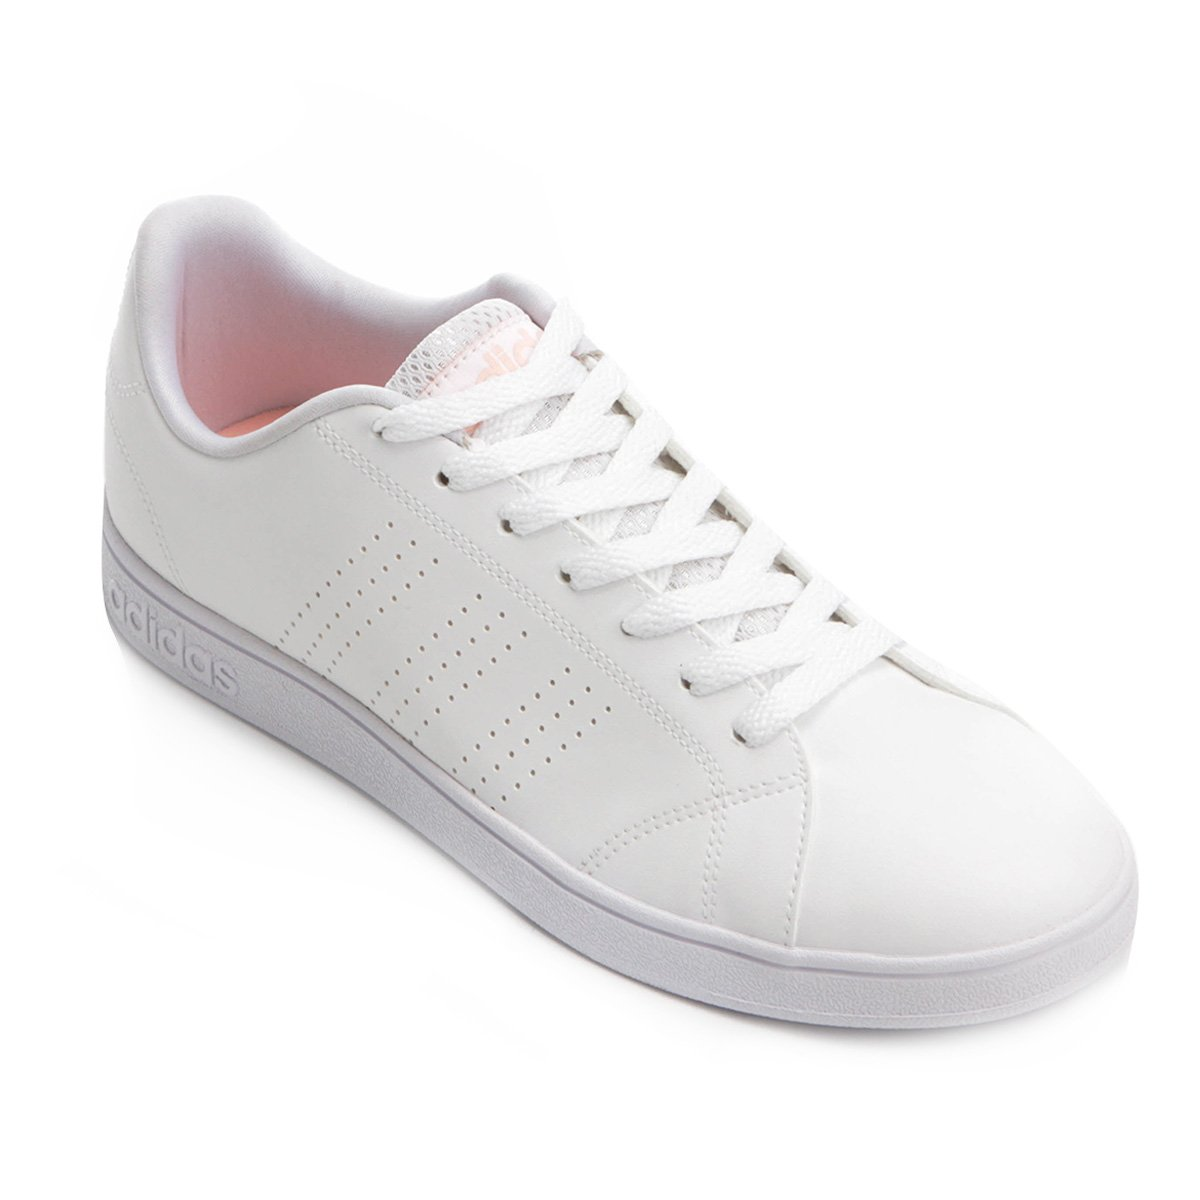 Tênis Adidas Vs Advantage Clean Feminino 3b59763275